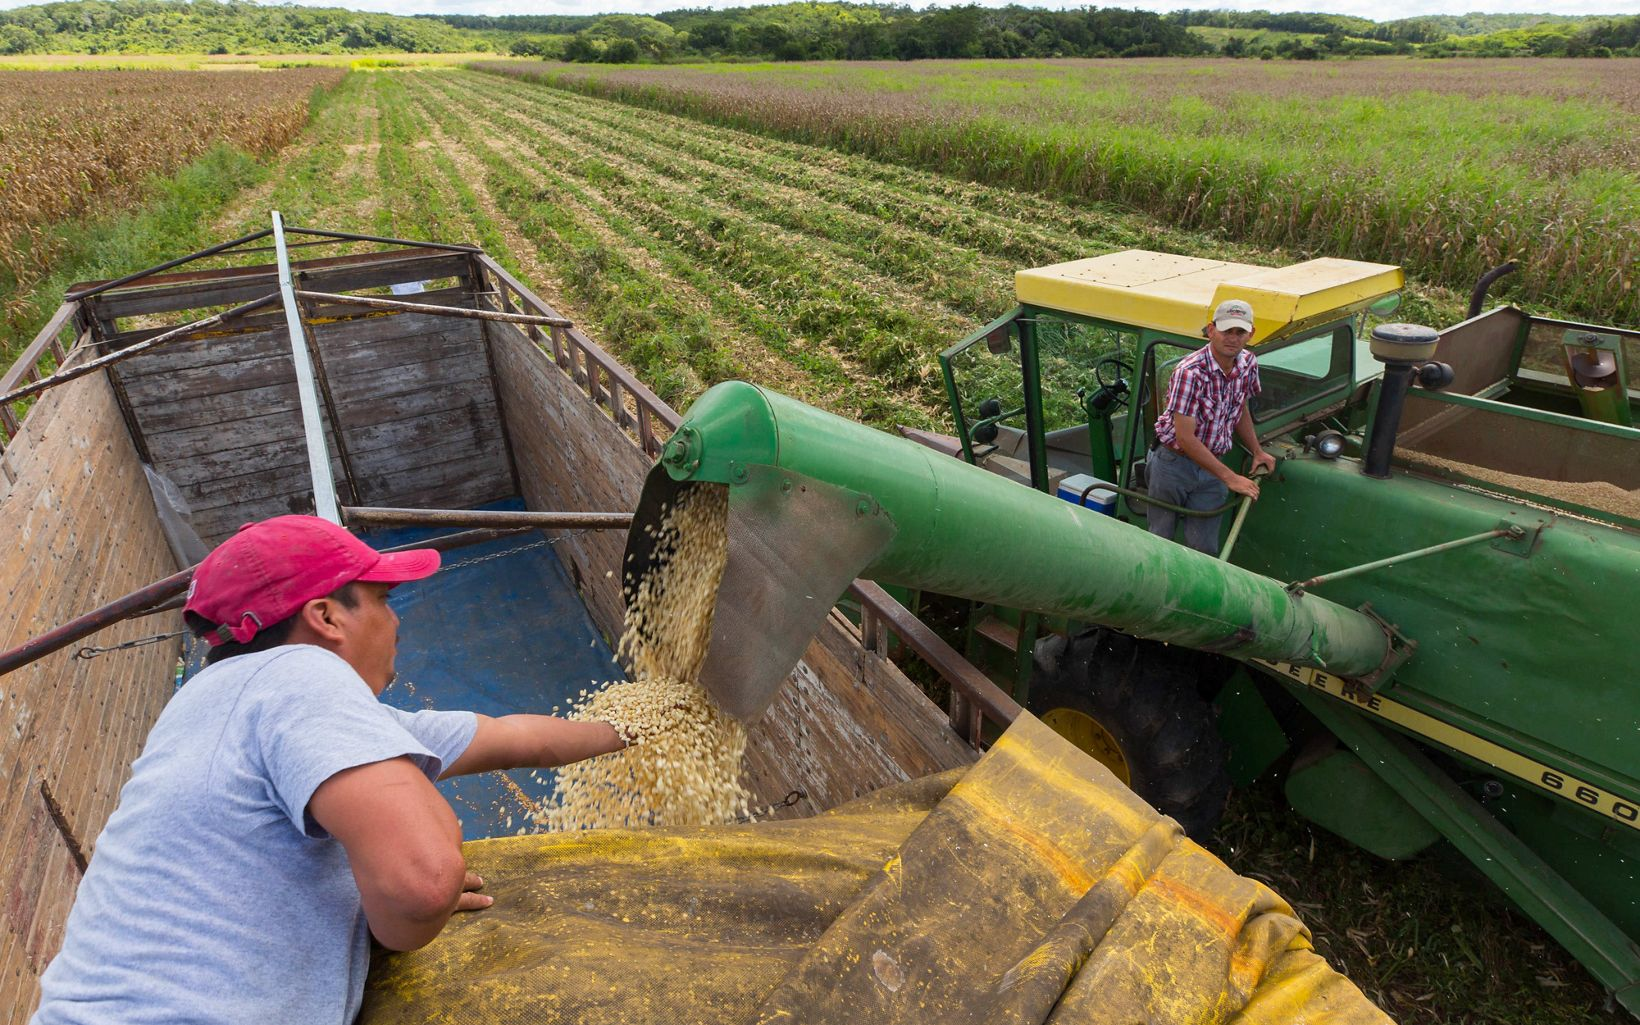 Truck driver Luis Maas Caamal checks out the corn being unloaded